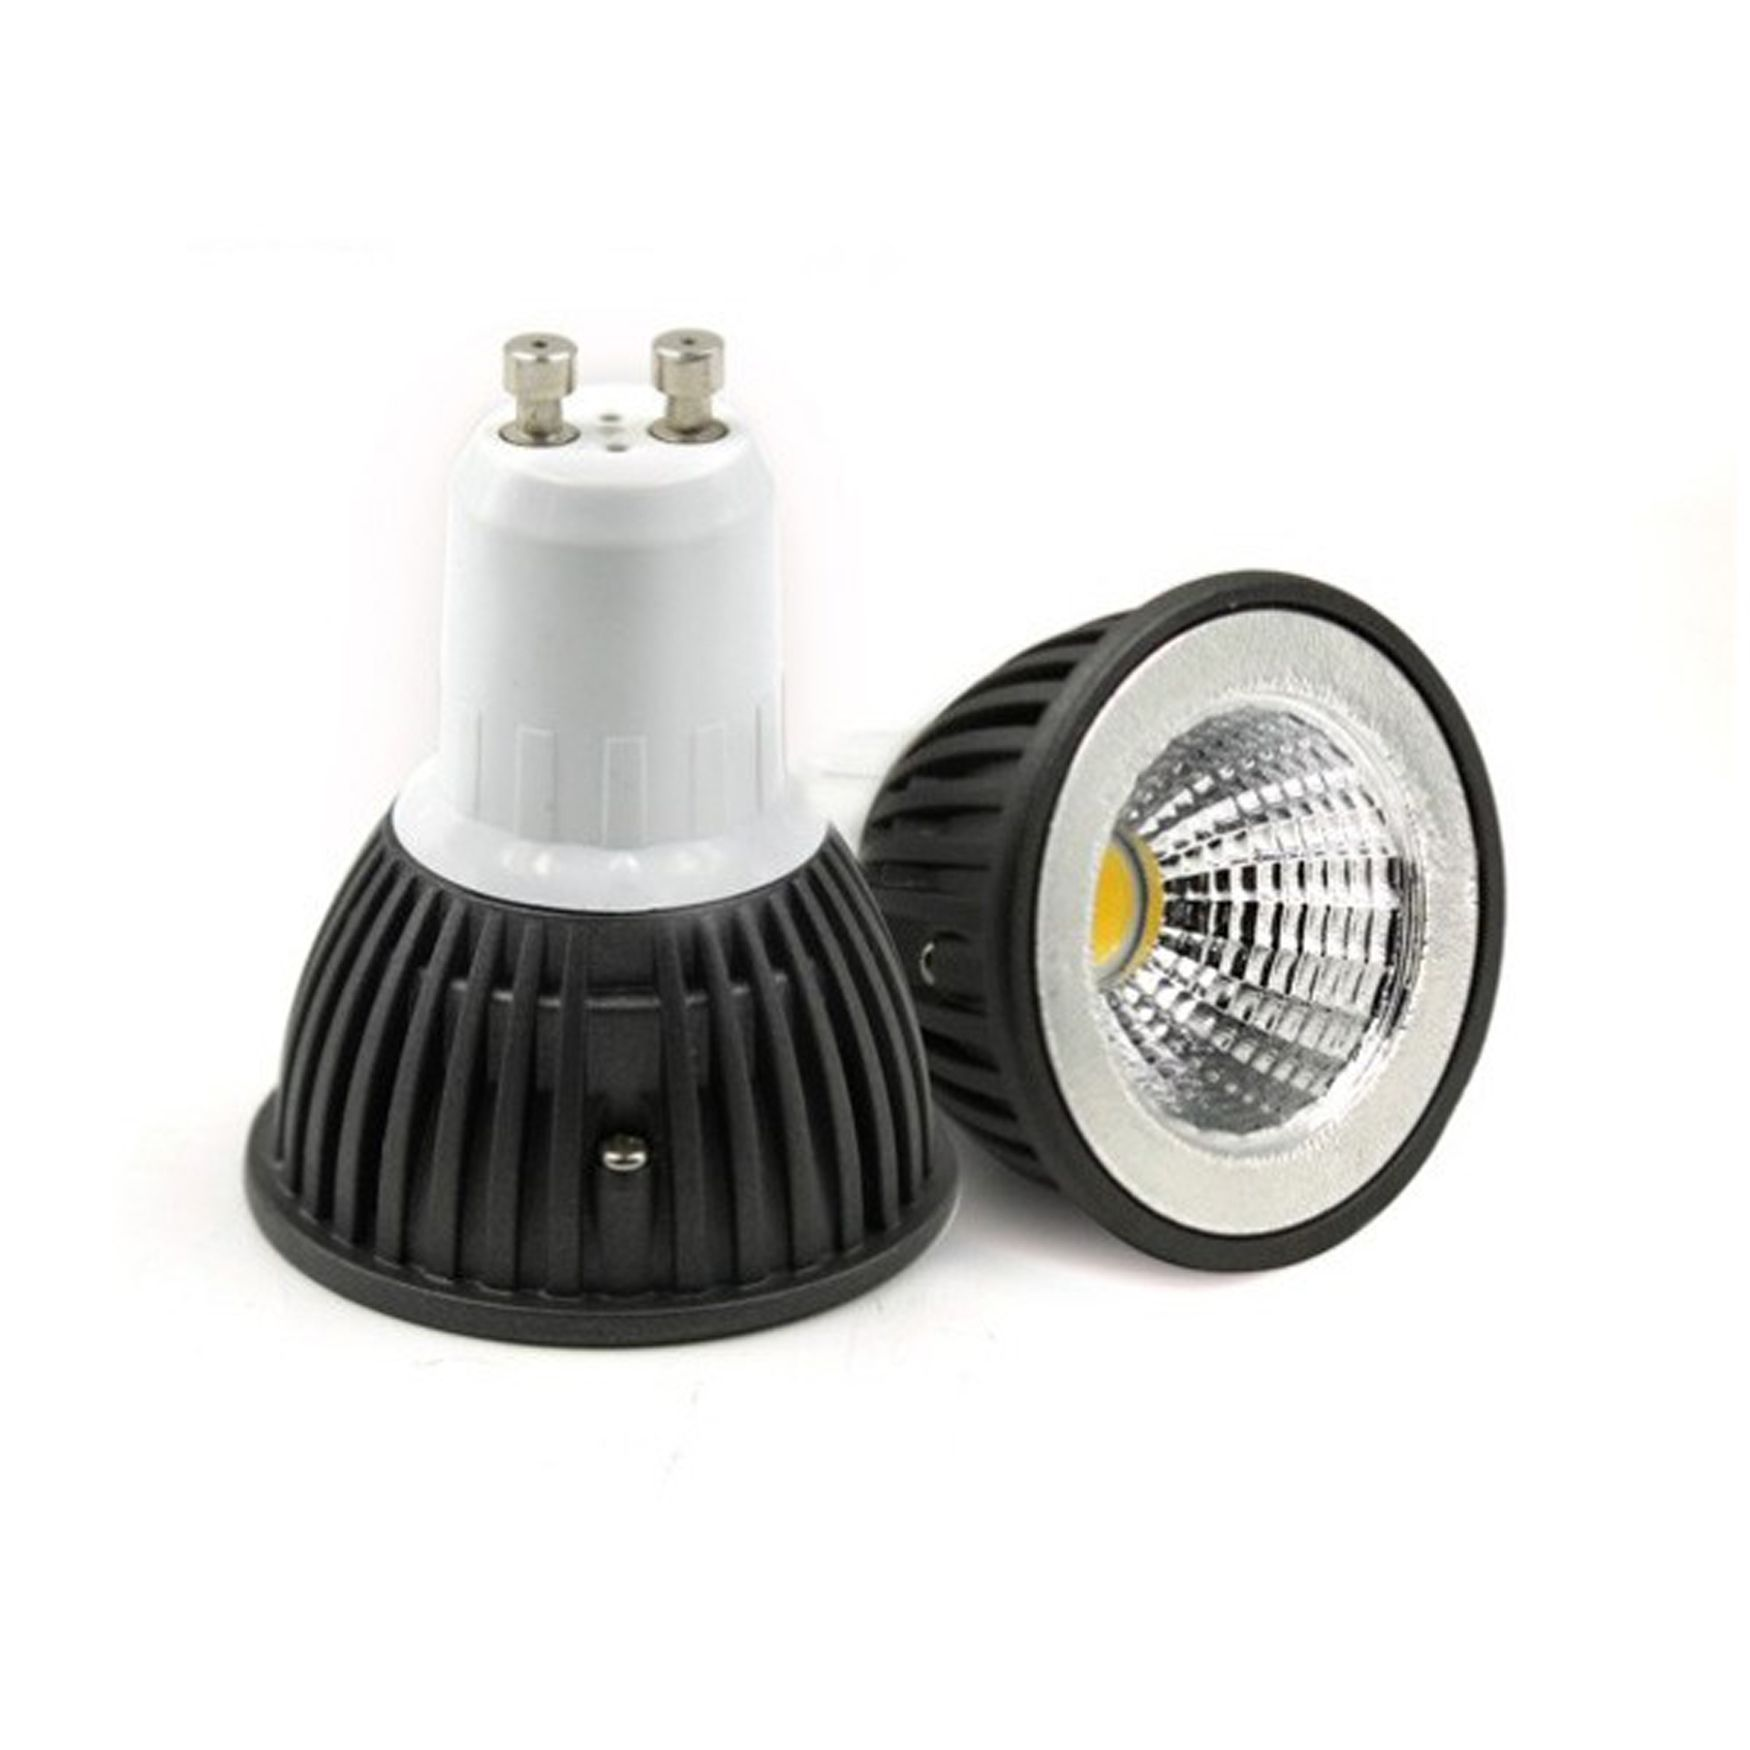 dimmable gu10 3w cob led bulb in warm white in black shell. Black Bedroom Furniture Sets. Home Design Ideas